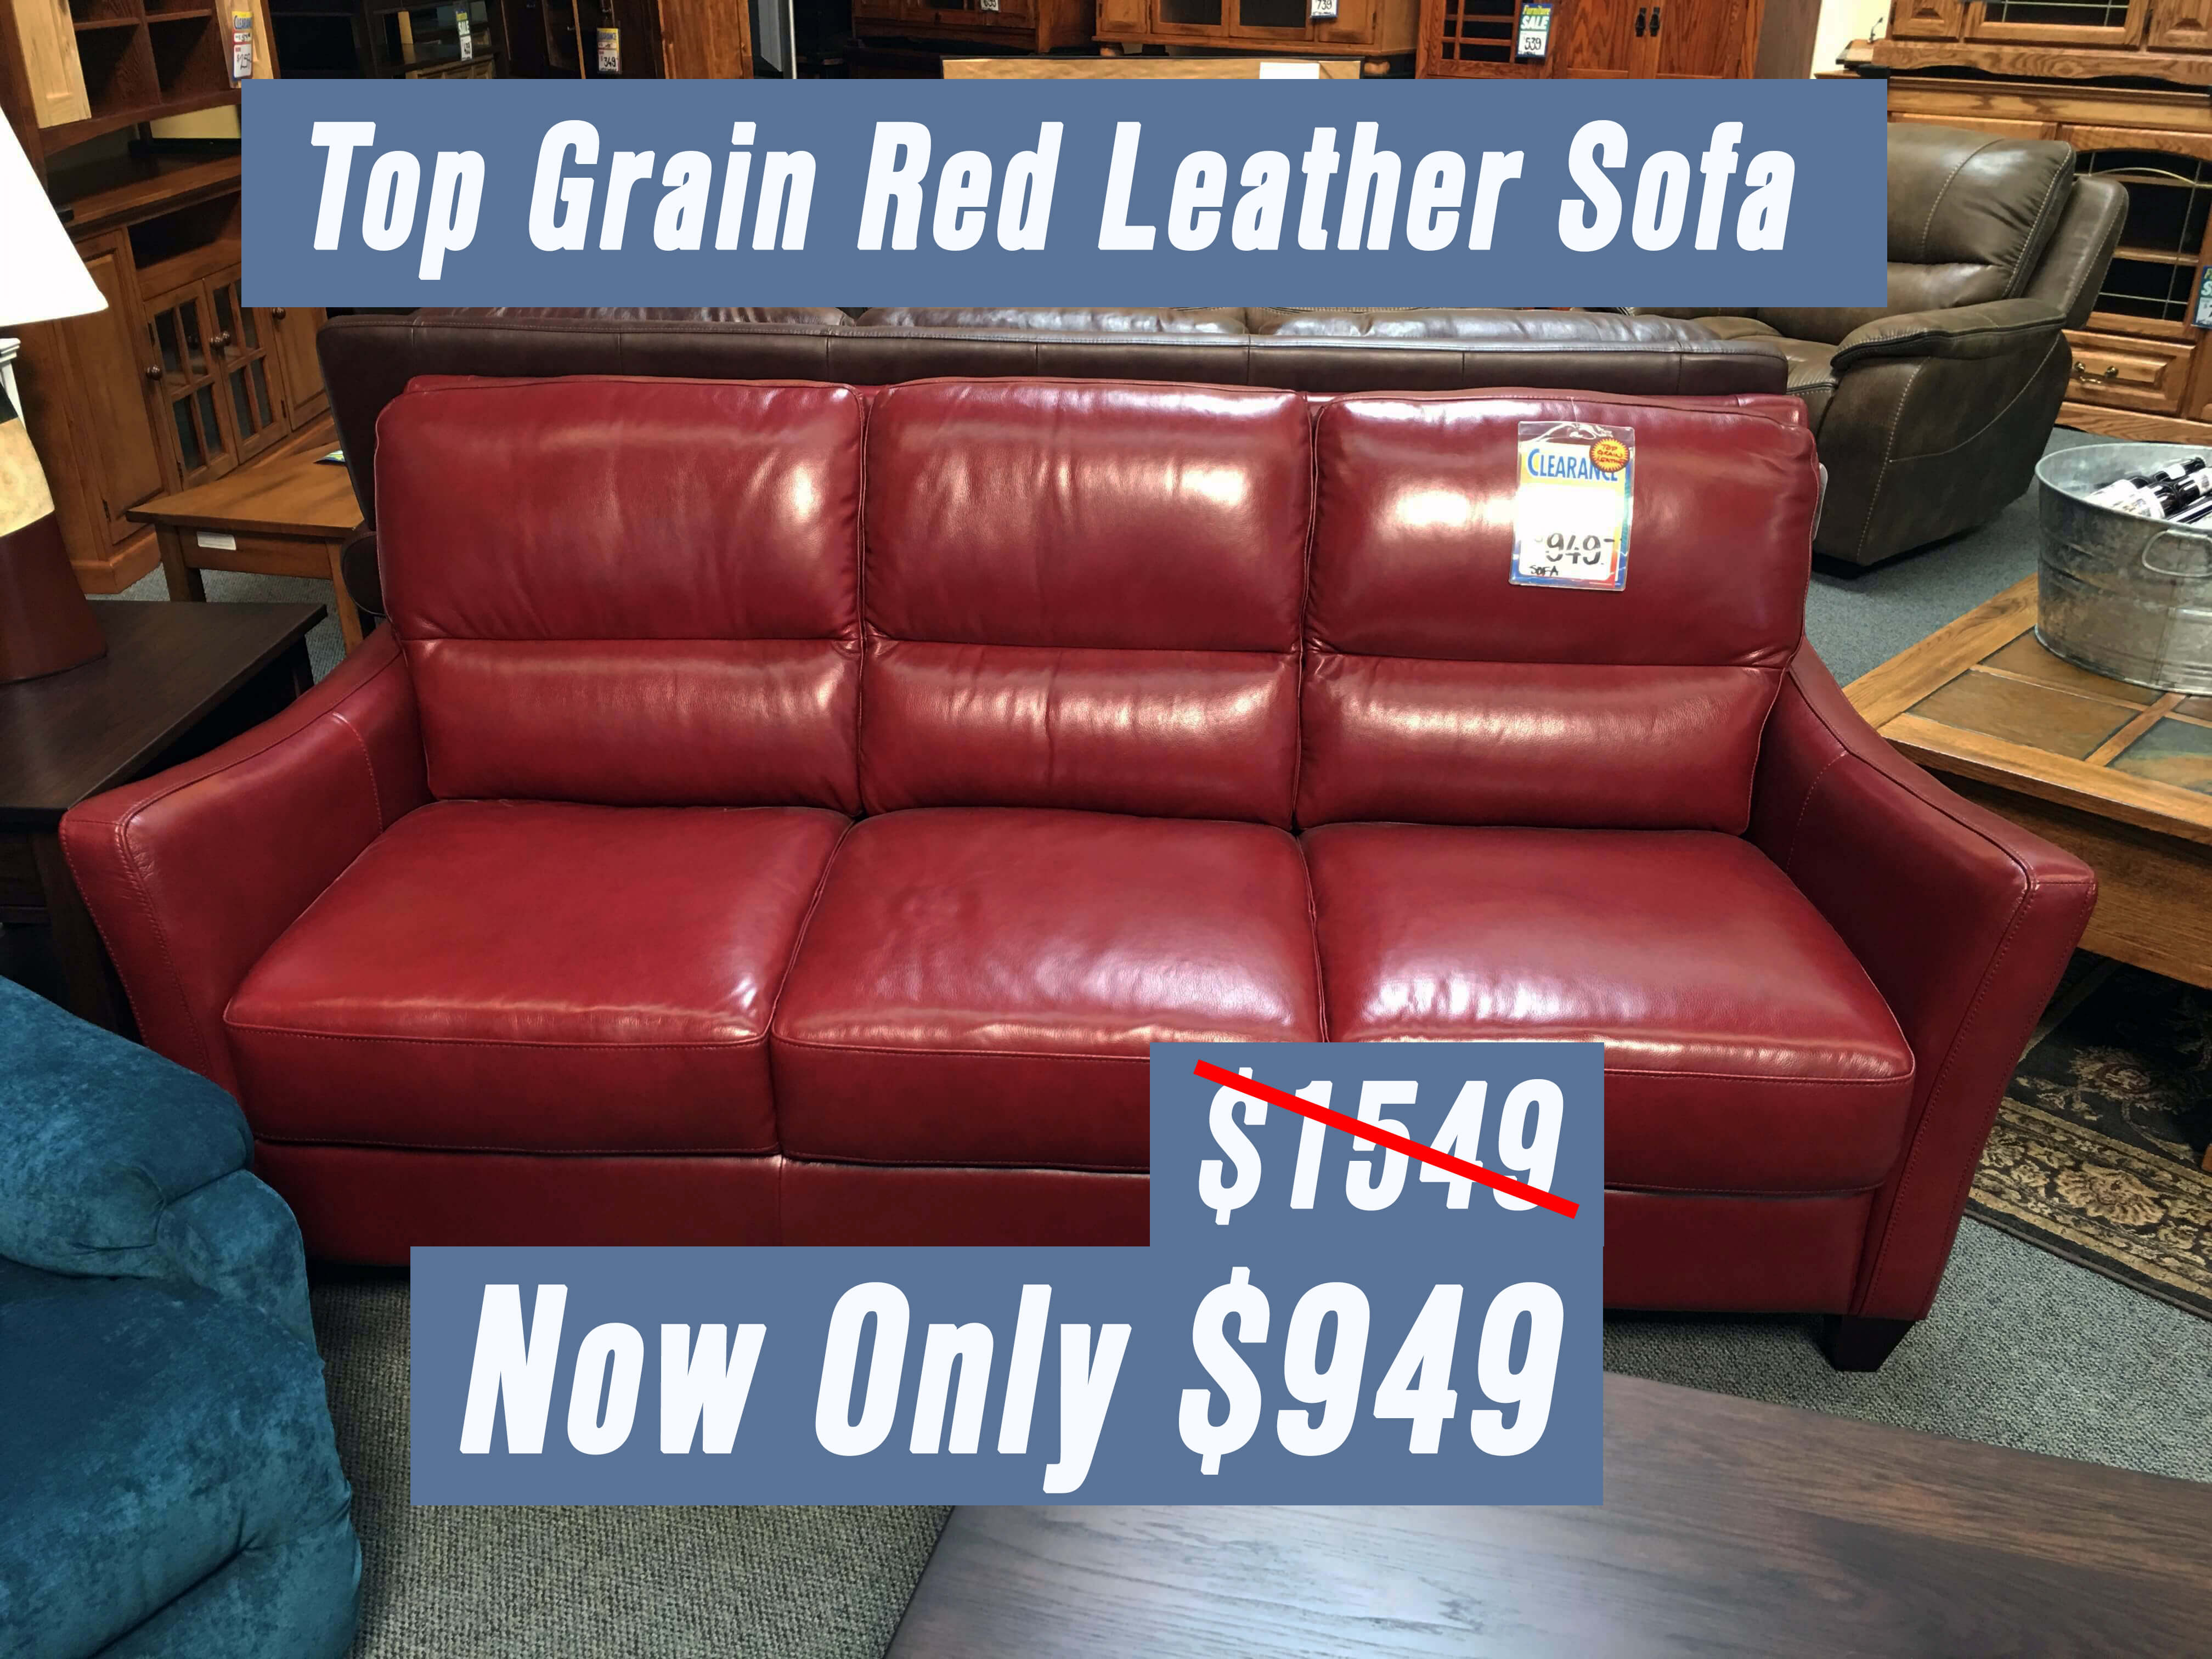 Top Grain Leather Sofa Clearance Images